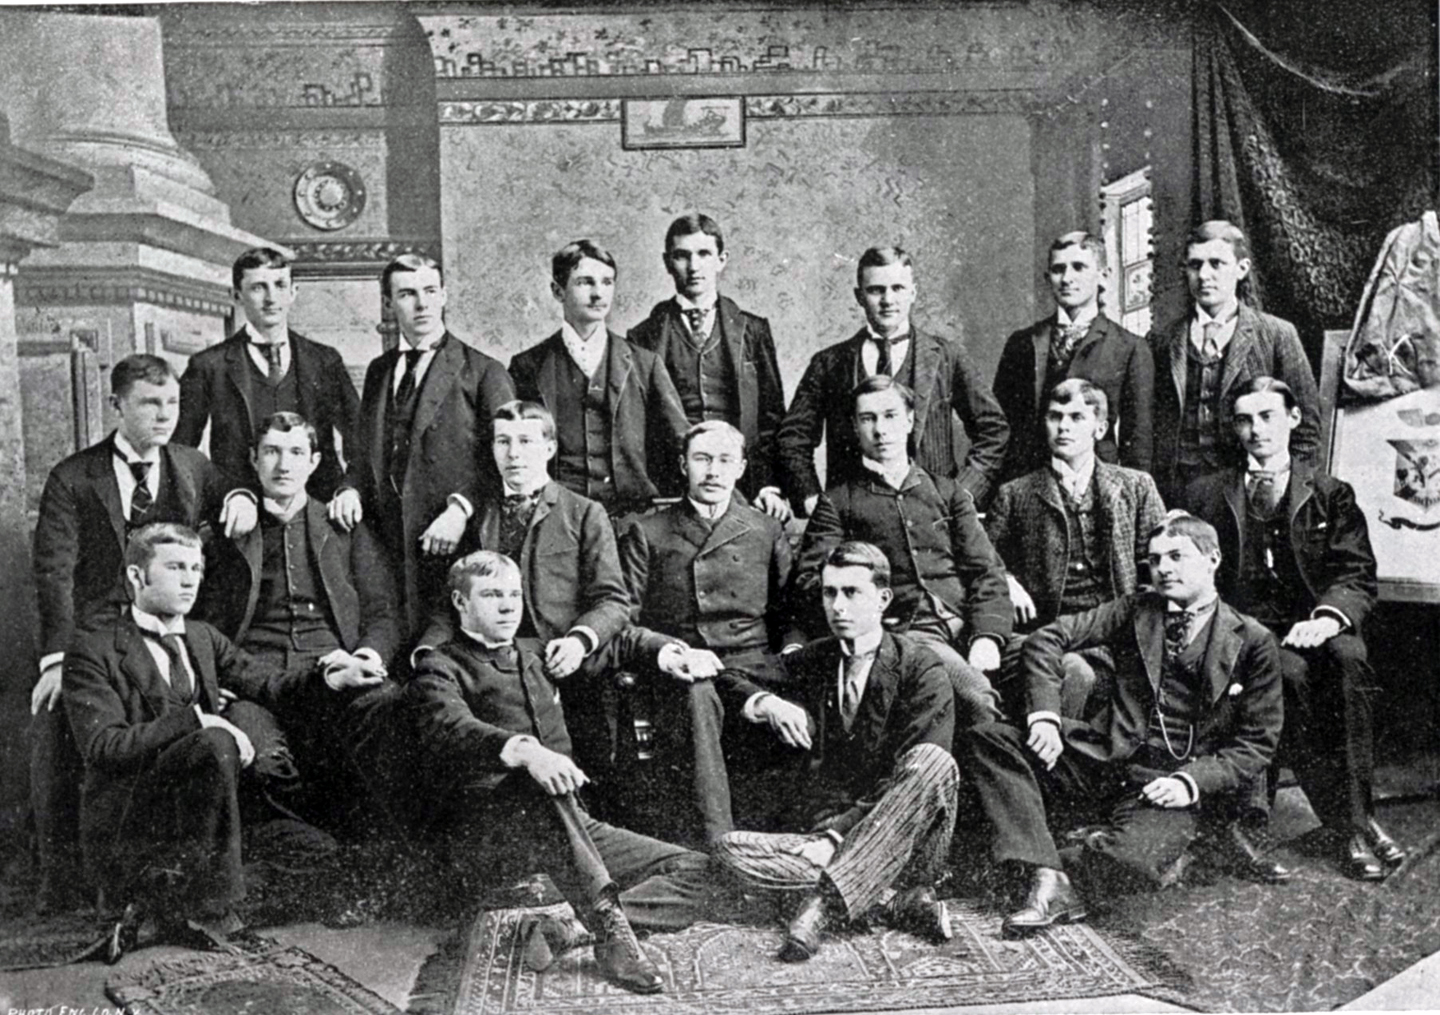 The brothers of Delta Kappa Epsilon in 1890